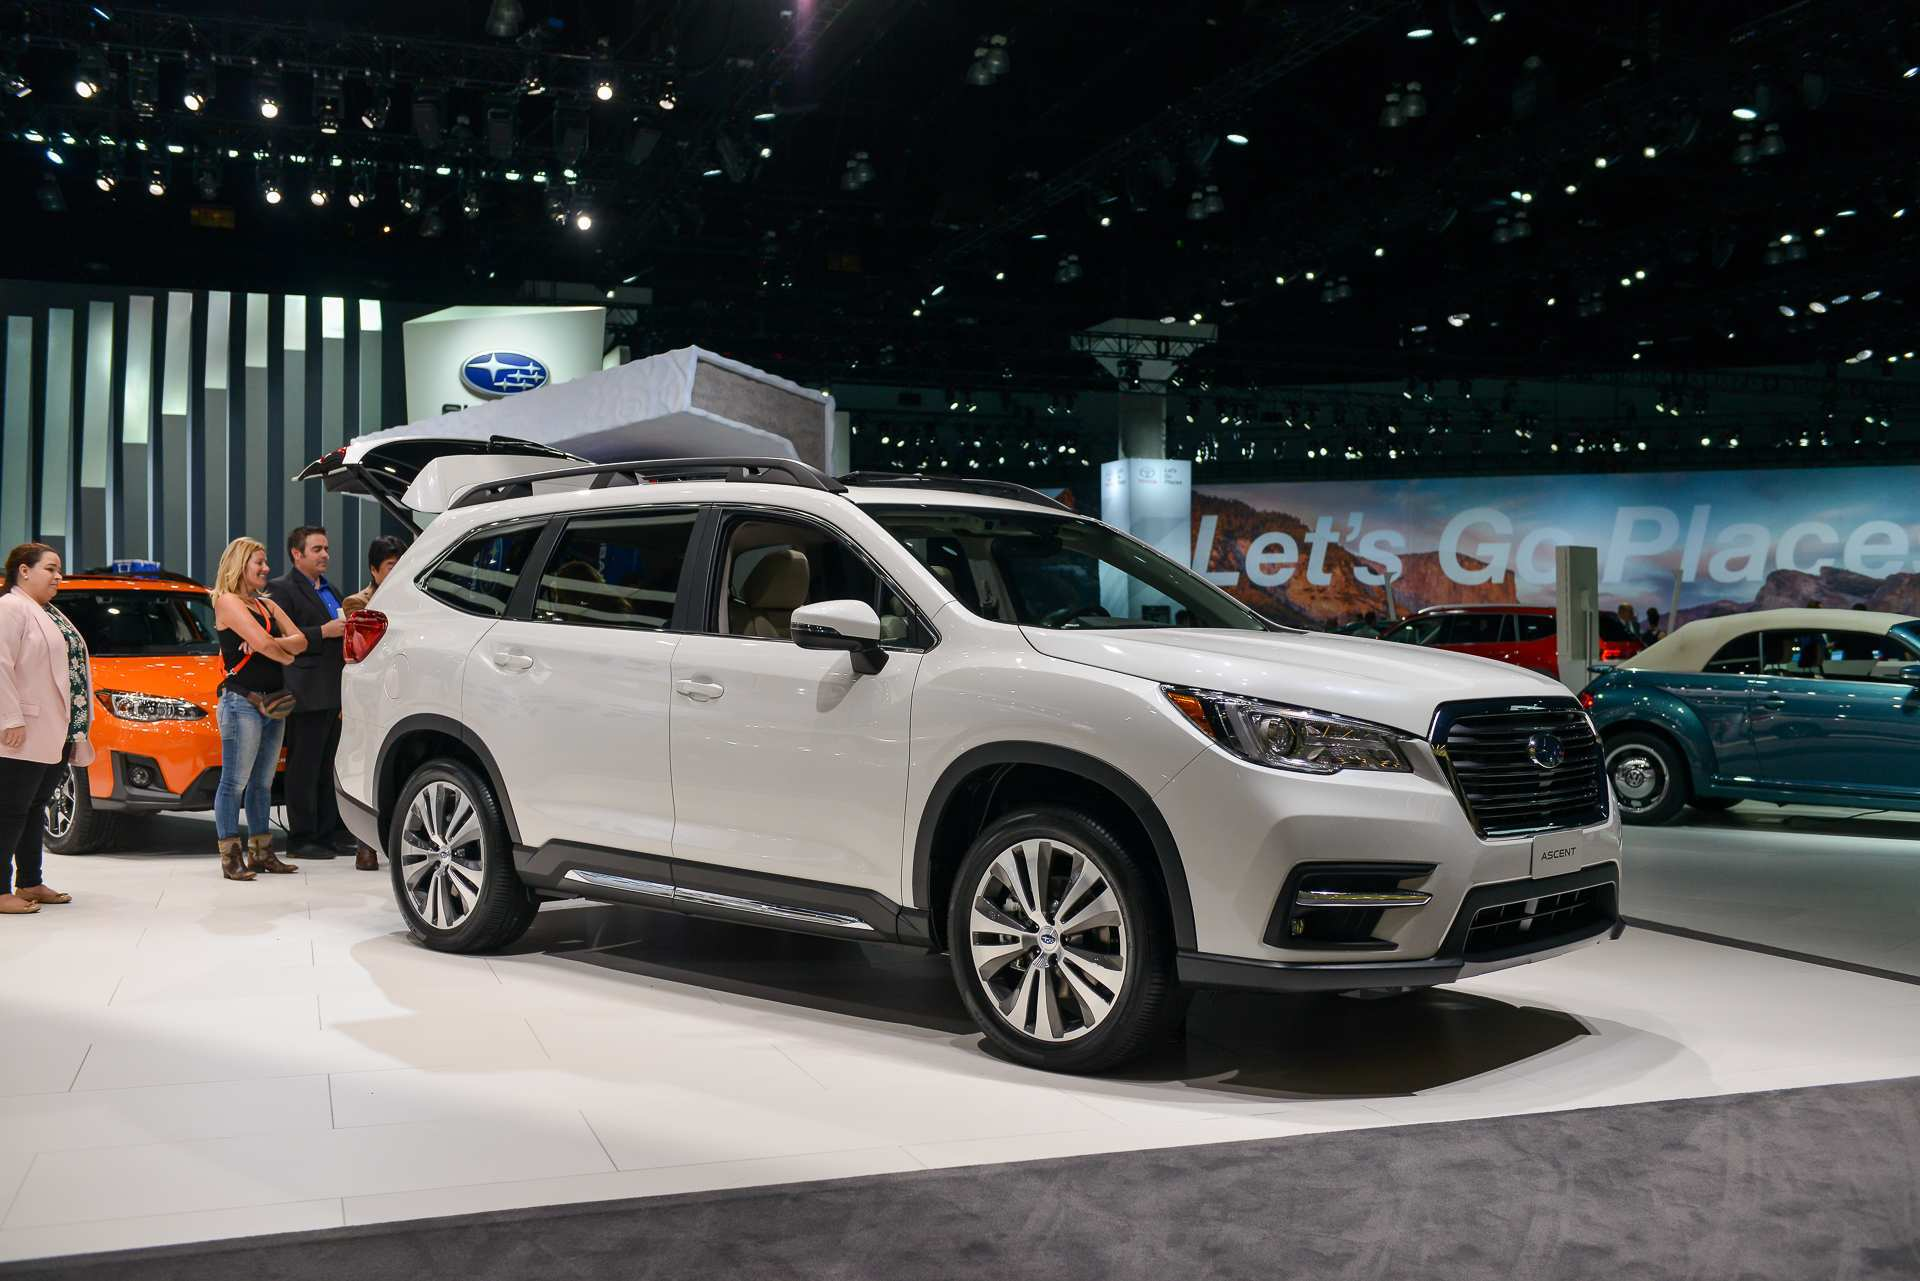 66 New New Subaru Unveils 2019 Ascent Price And Release Date First Drive by New Subaru Unveils 2019 Ascent Price And Release Date